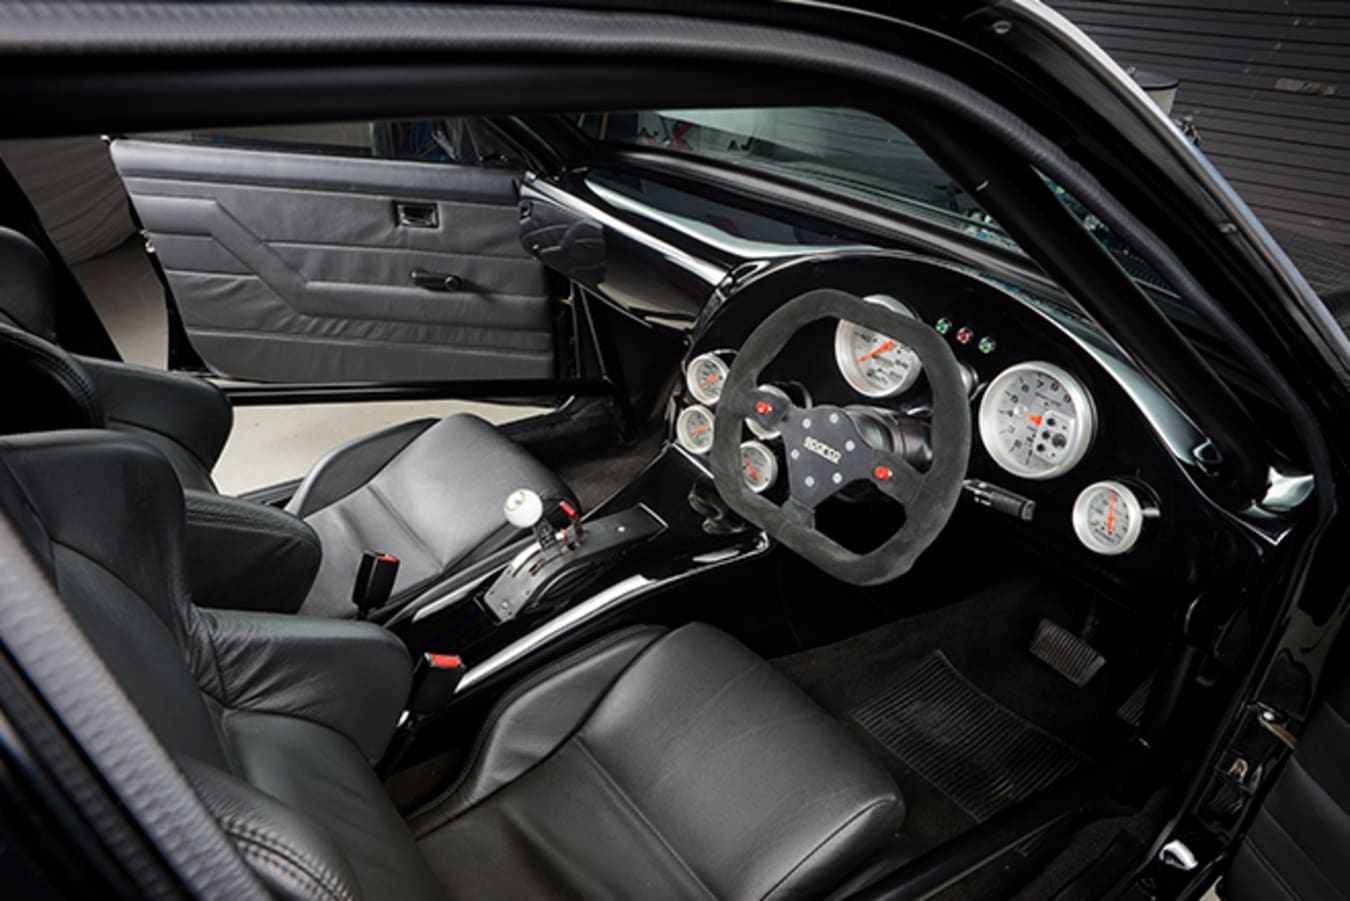 Holden VH Commodore interior front